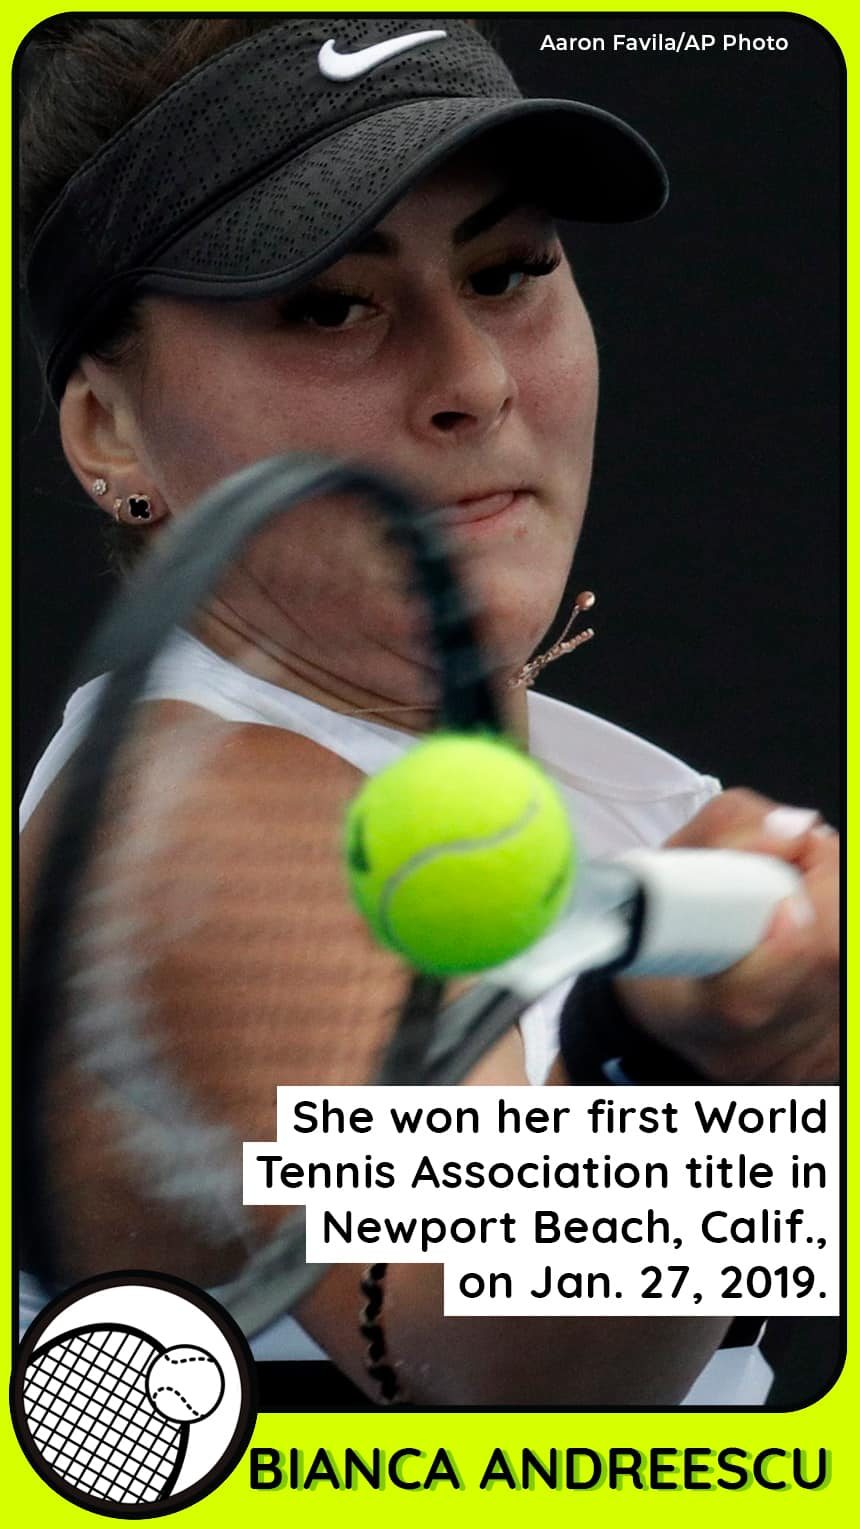 A female tennis player looks focused as she hits the ball.